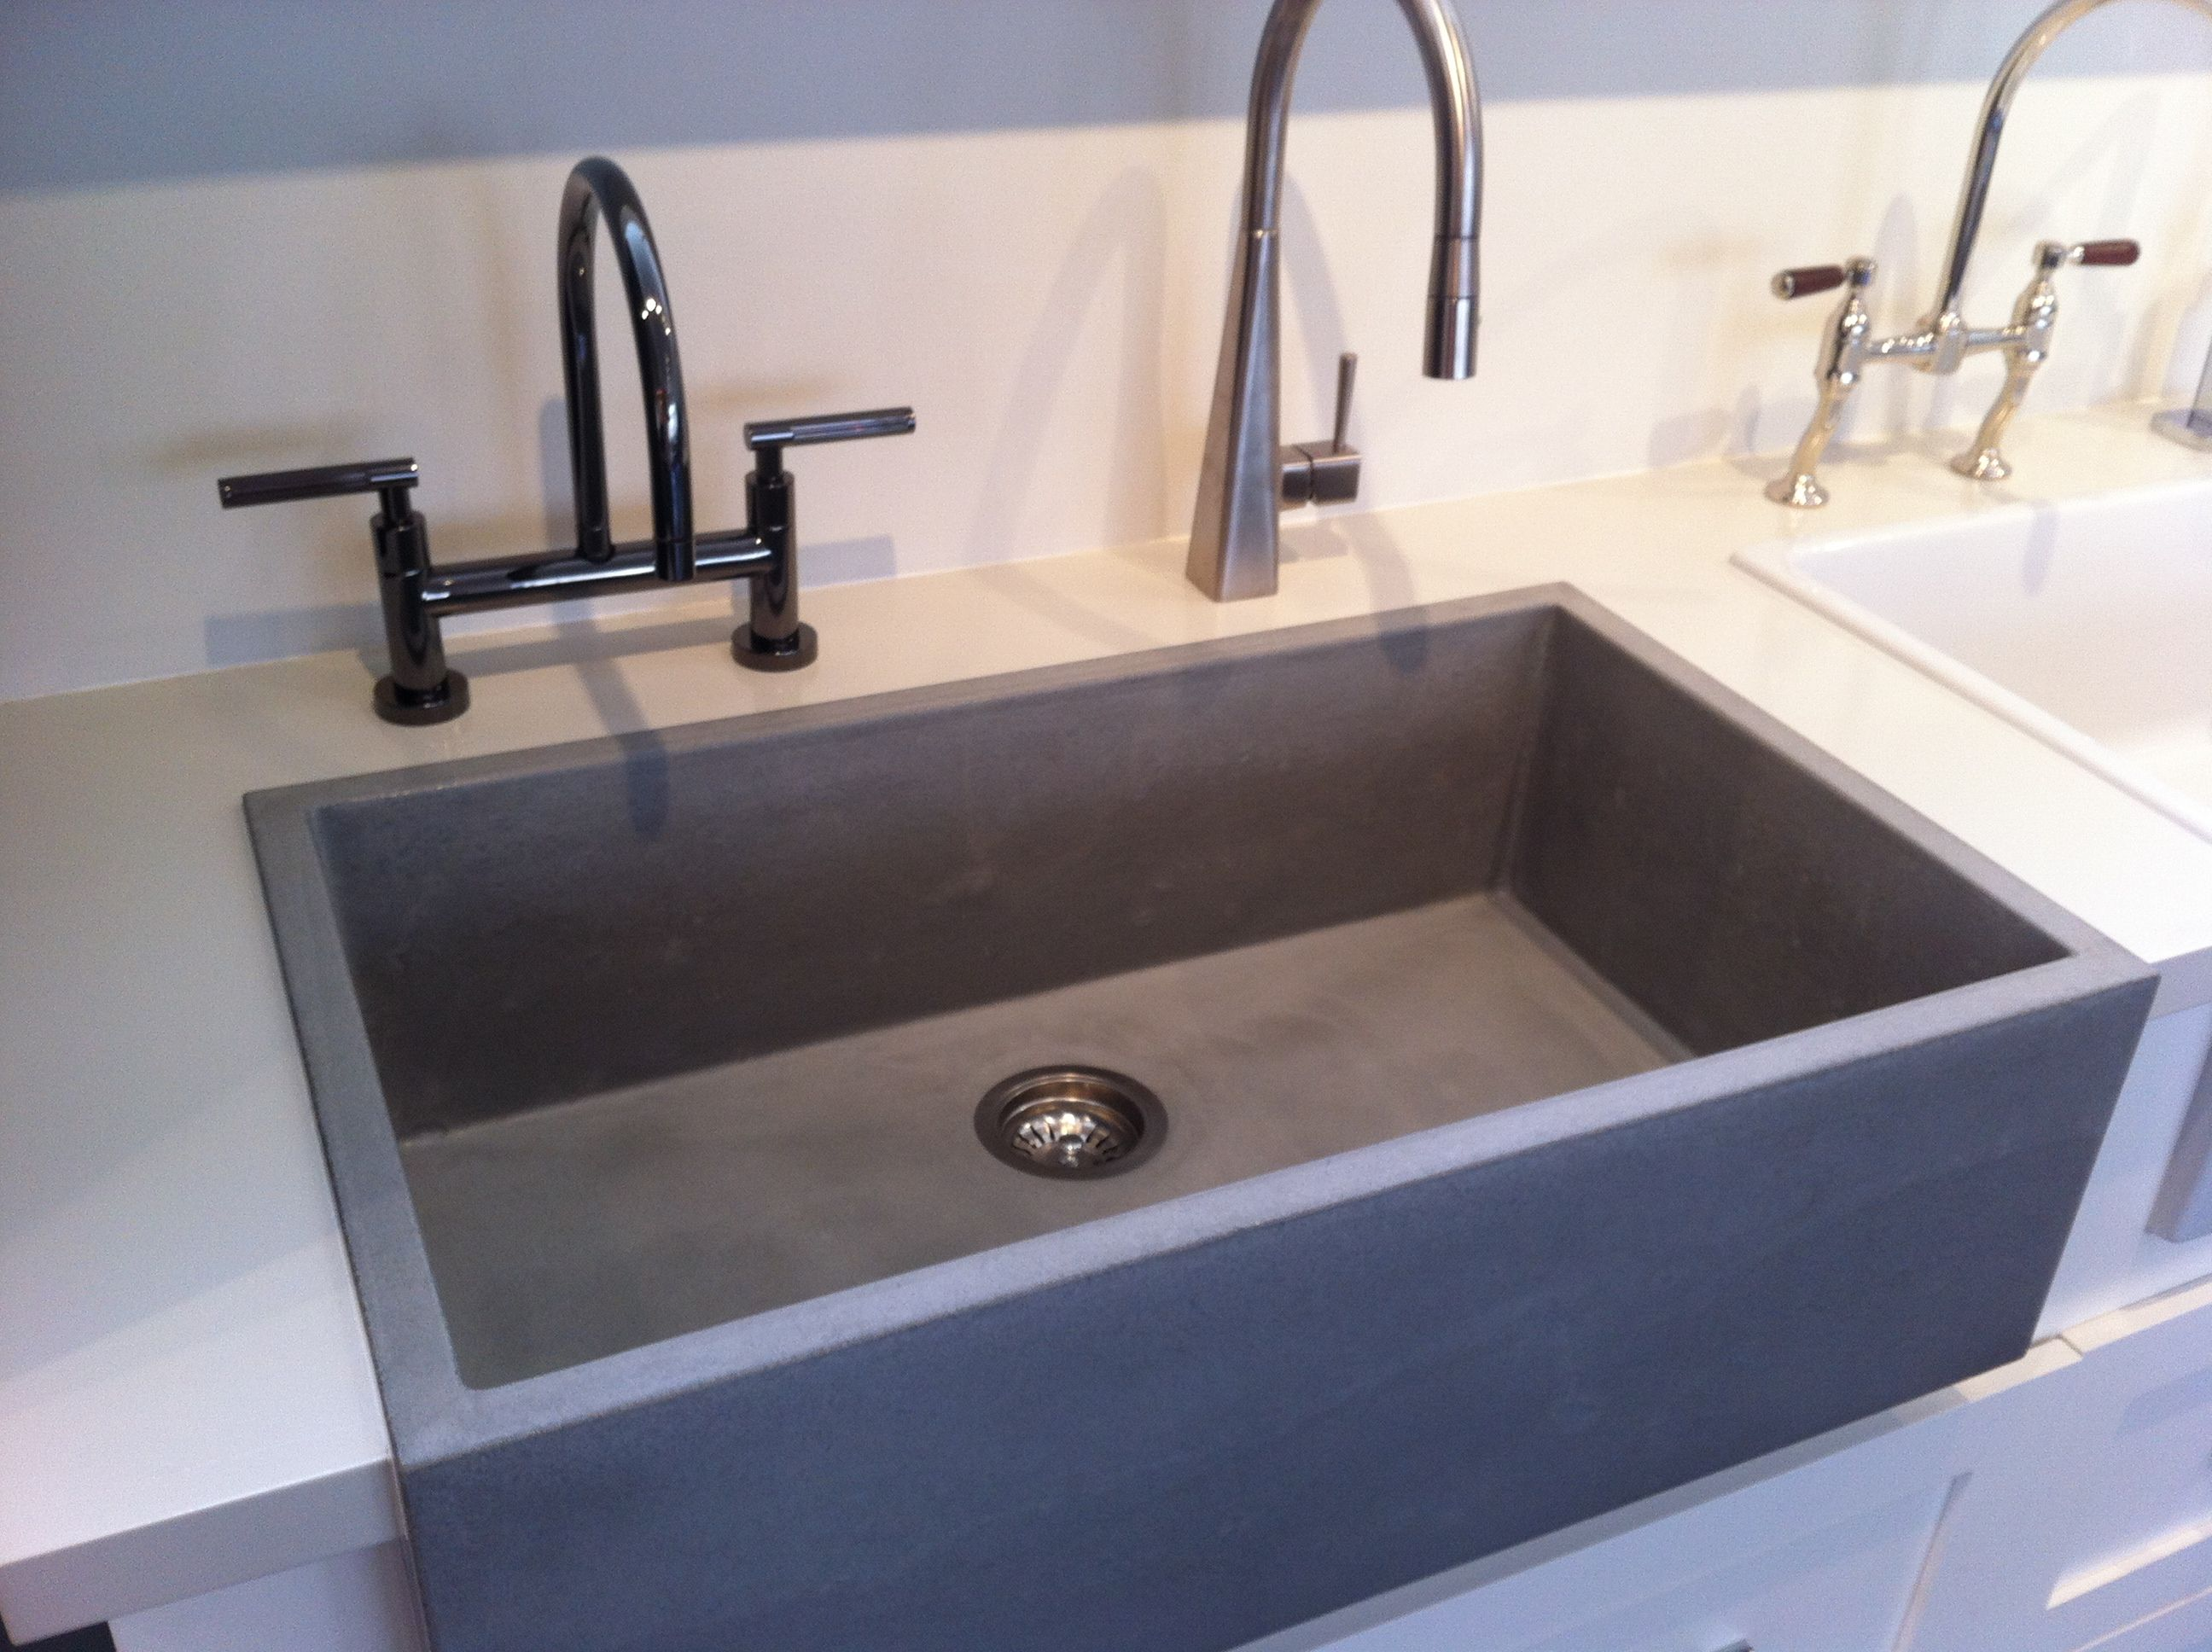 Cement Kitchen Sink Stylish Concrete Sinks Designed To Energize The Kitchen